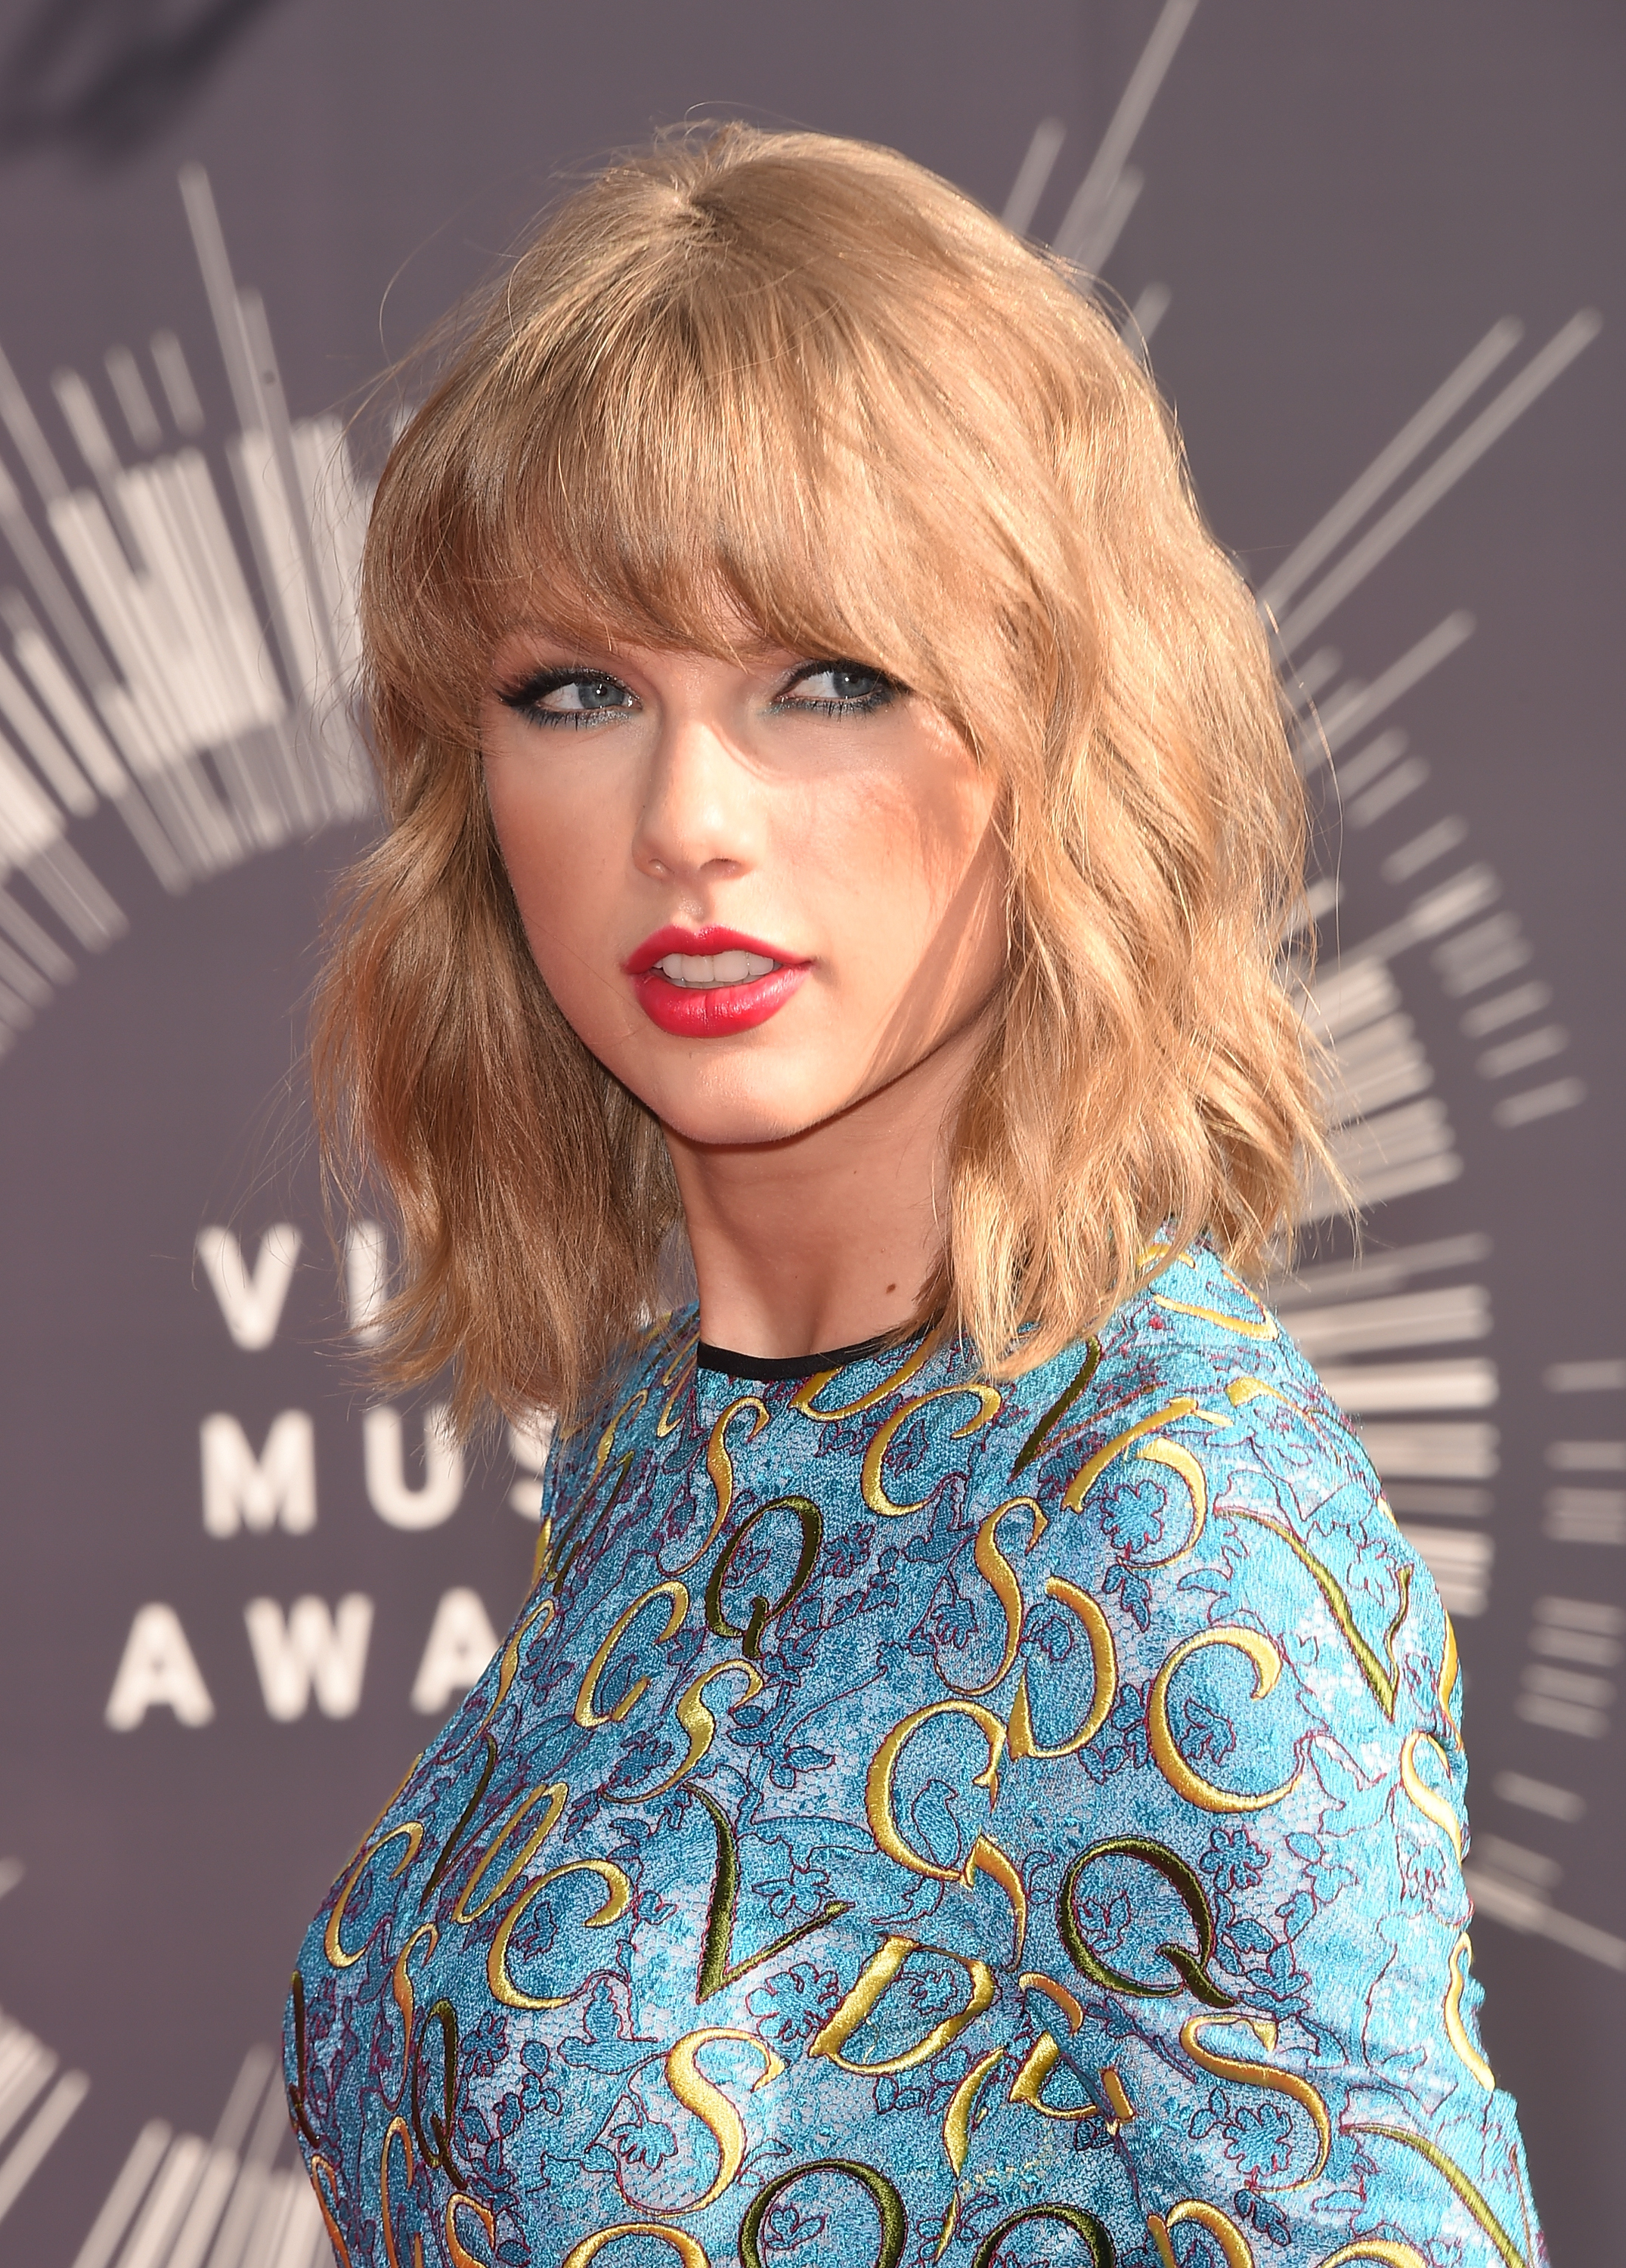 Taylor Swift S 1989 Track List Revealed So What Are These Songs About